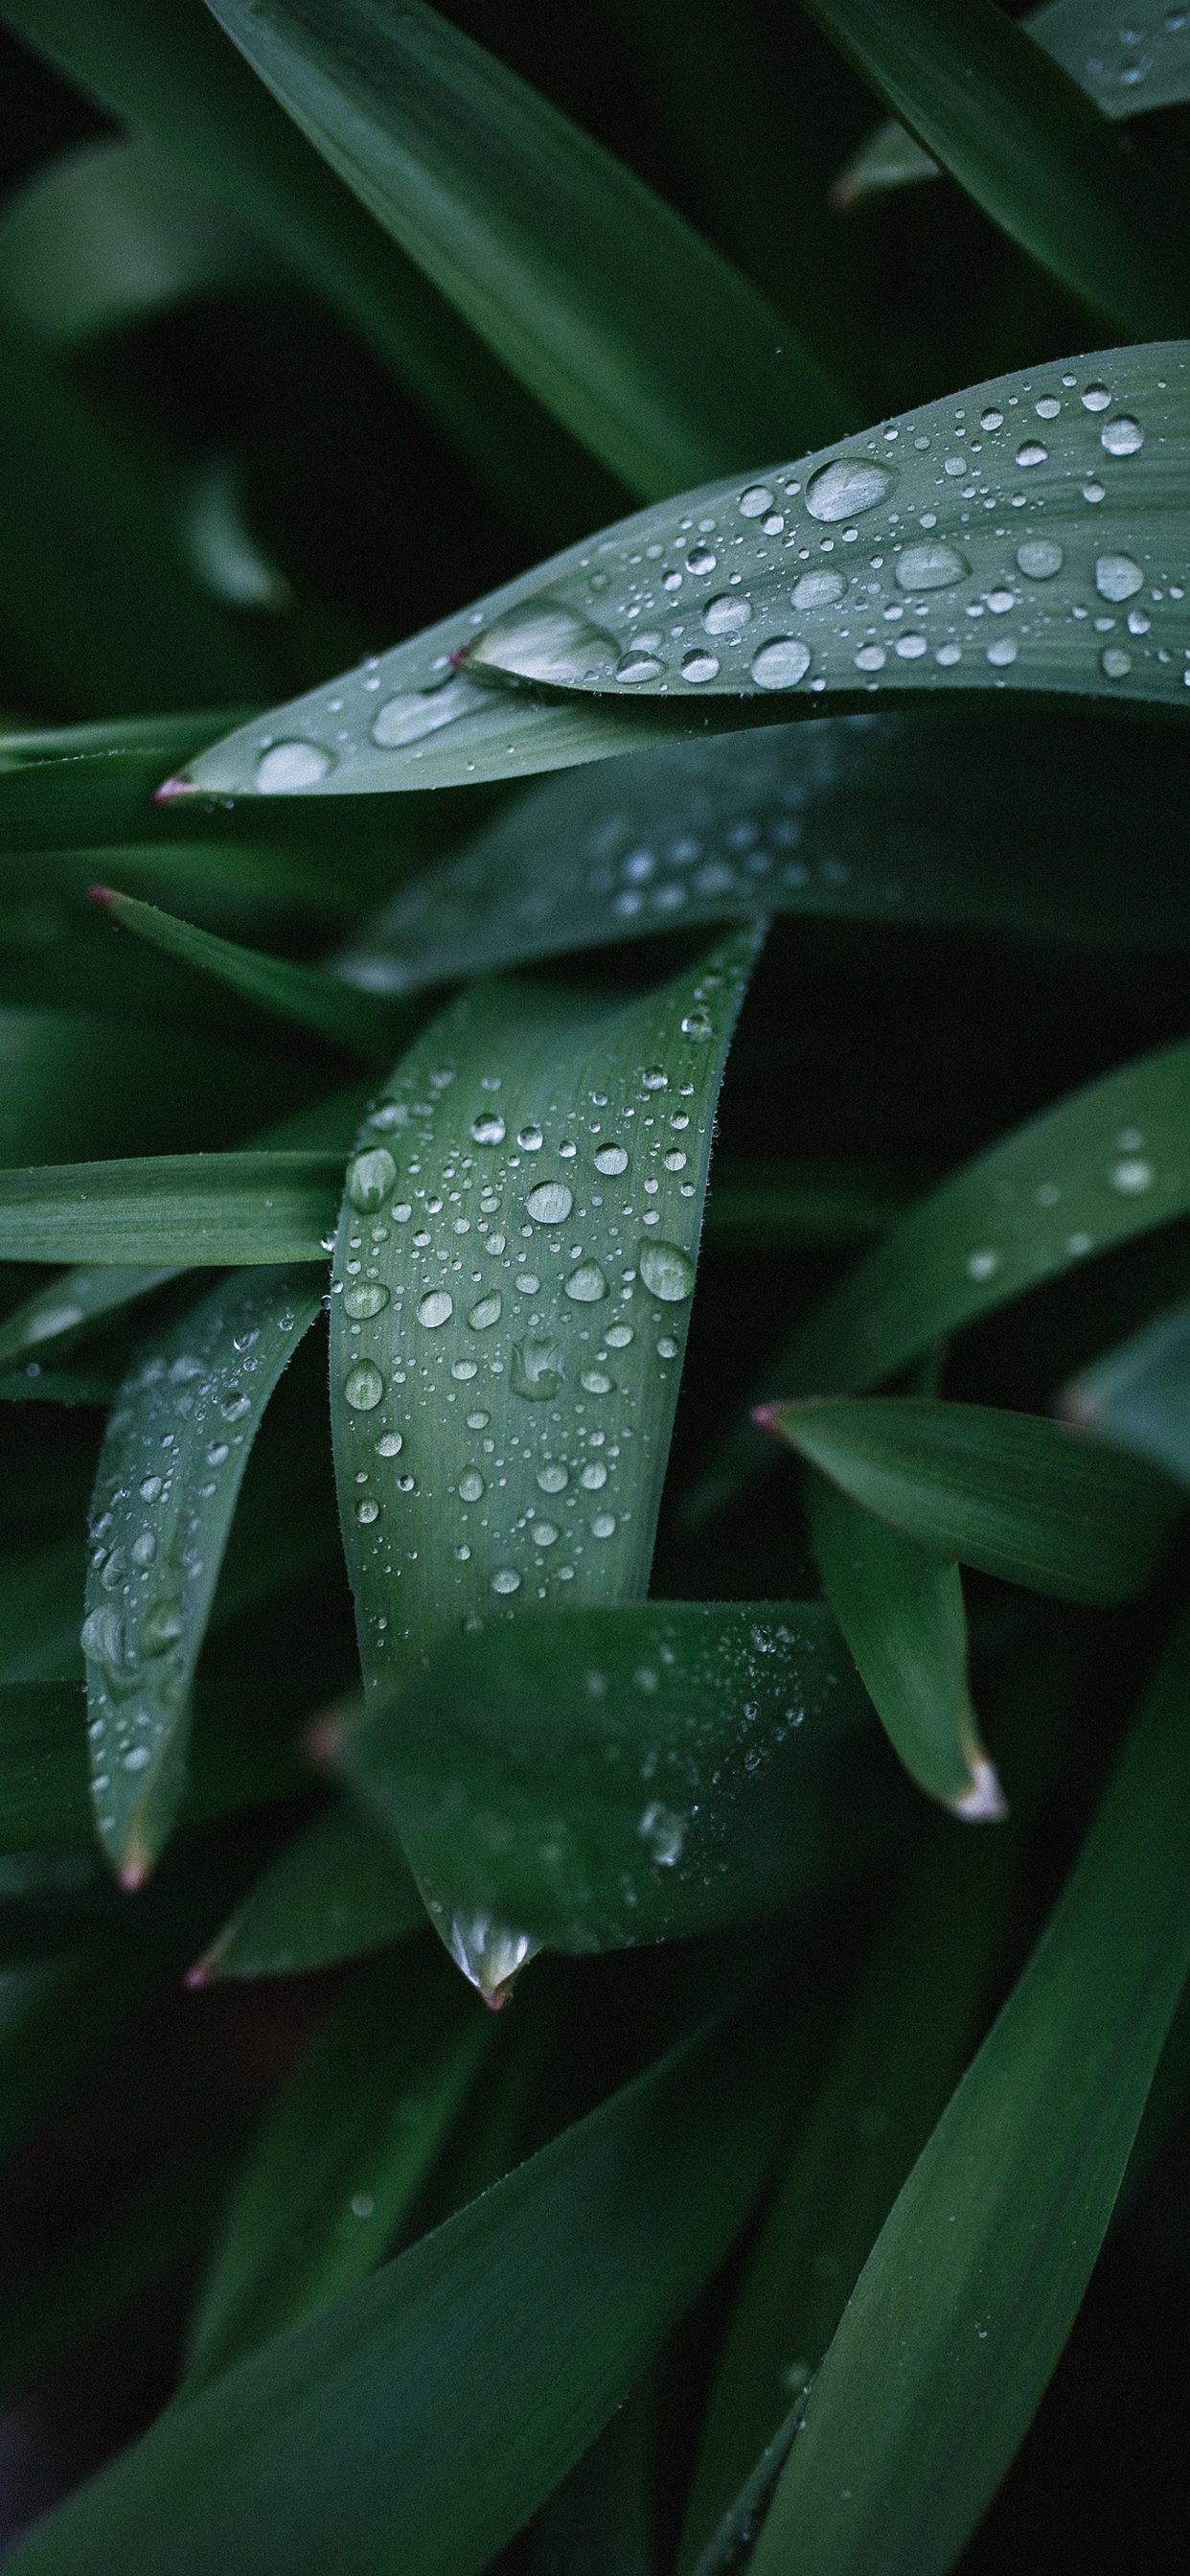 iPhone wallpapers plants wet leaves Fonds d'écran iPhone du 13/06/2019